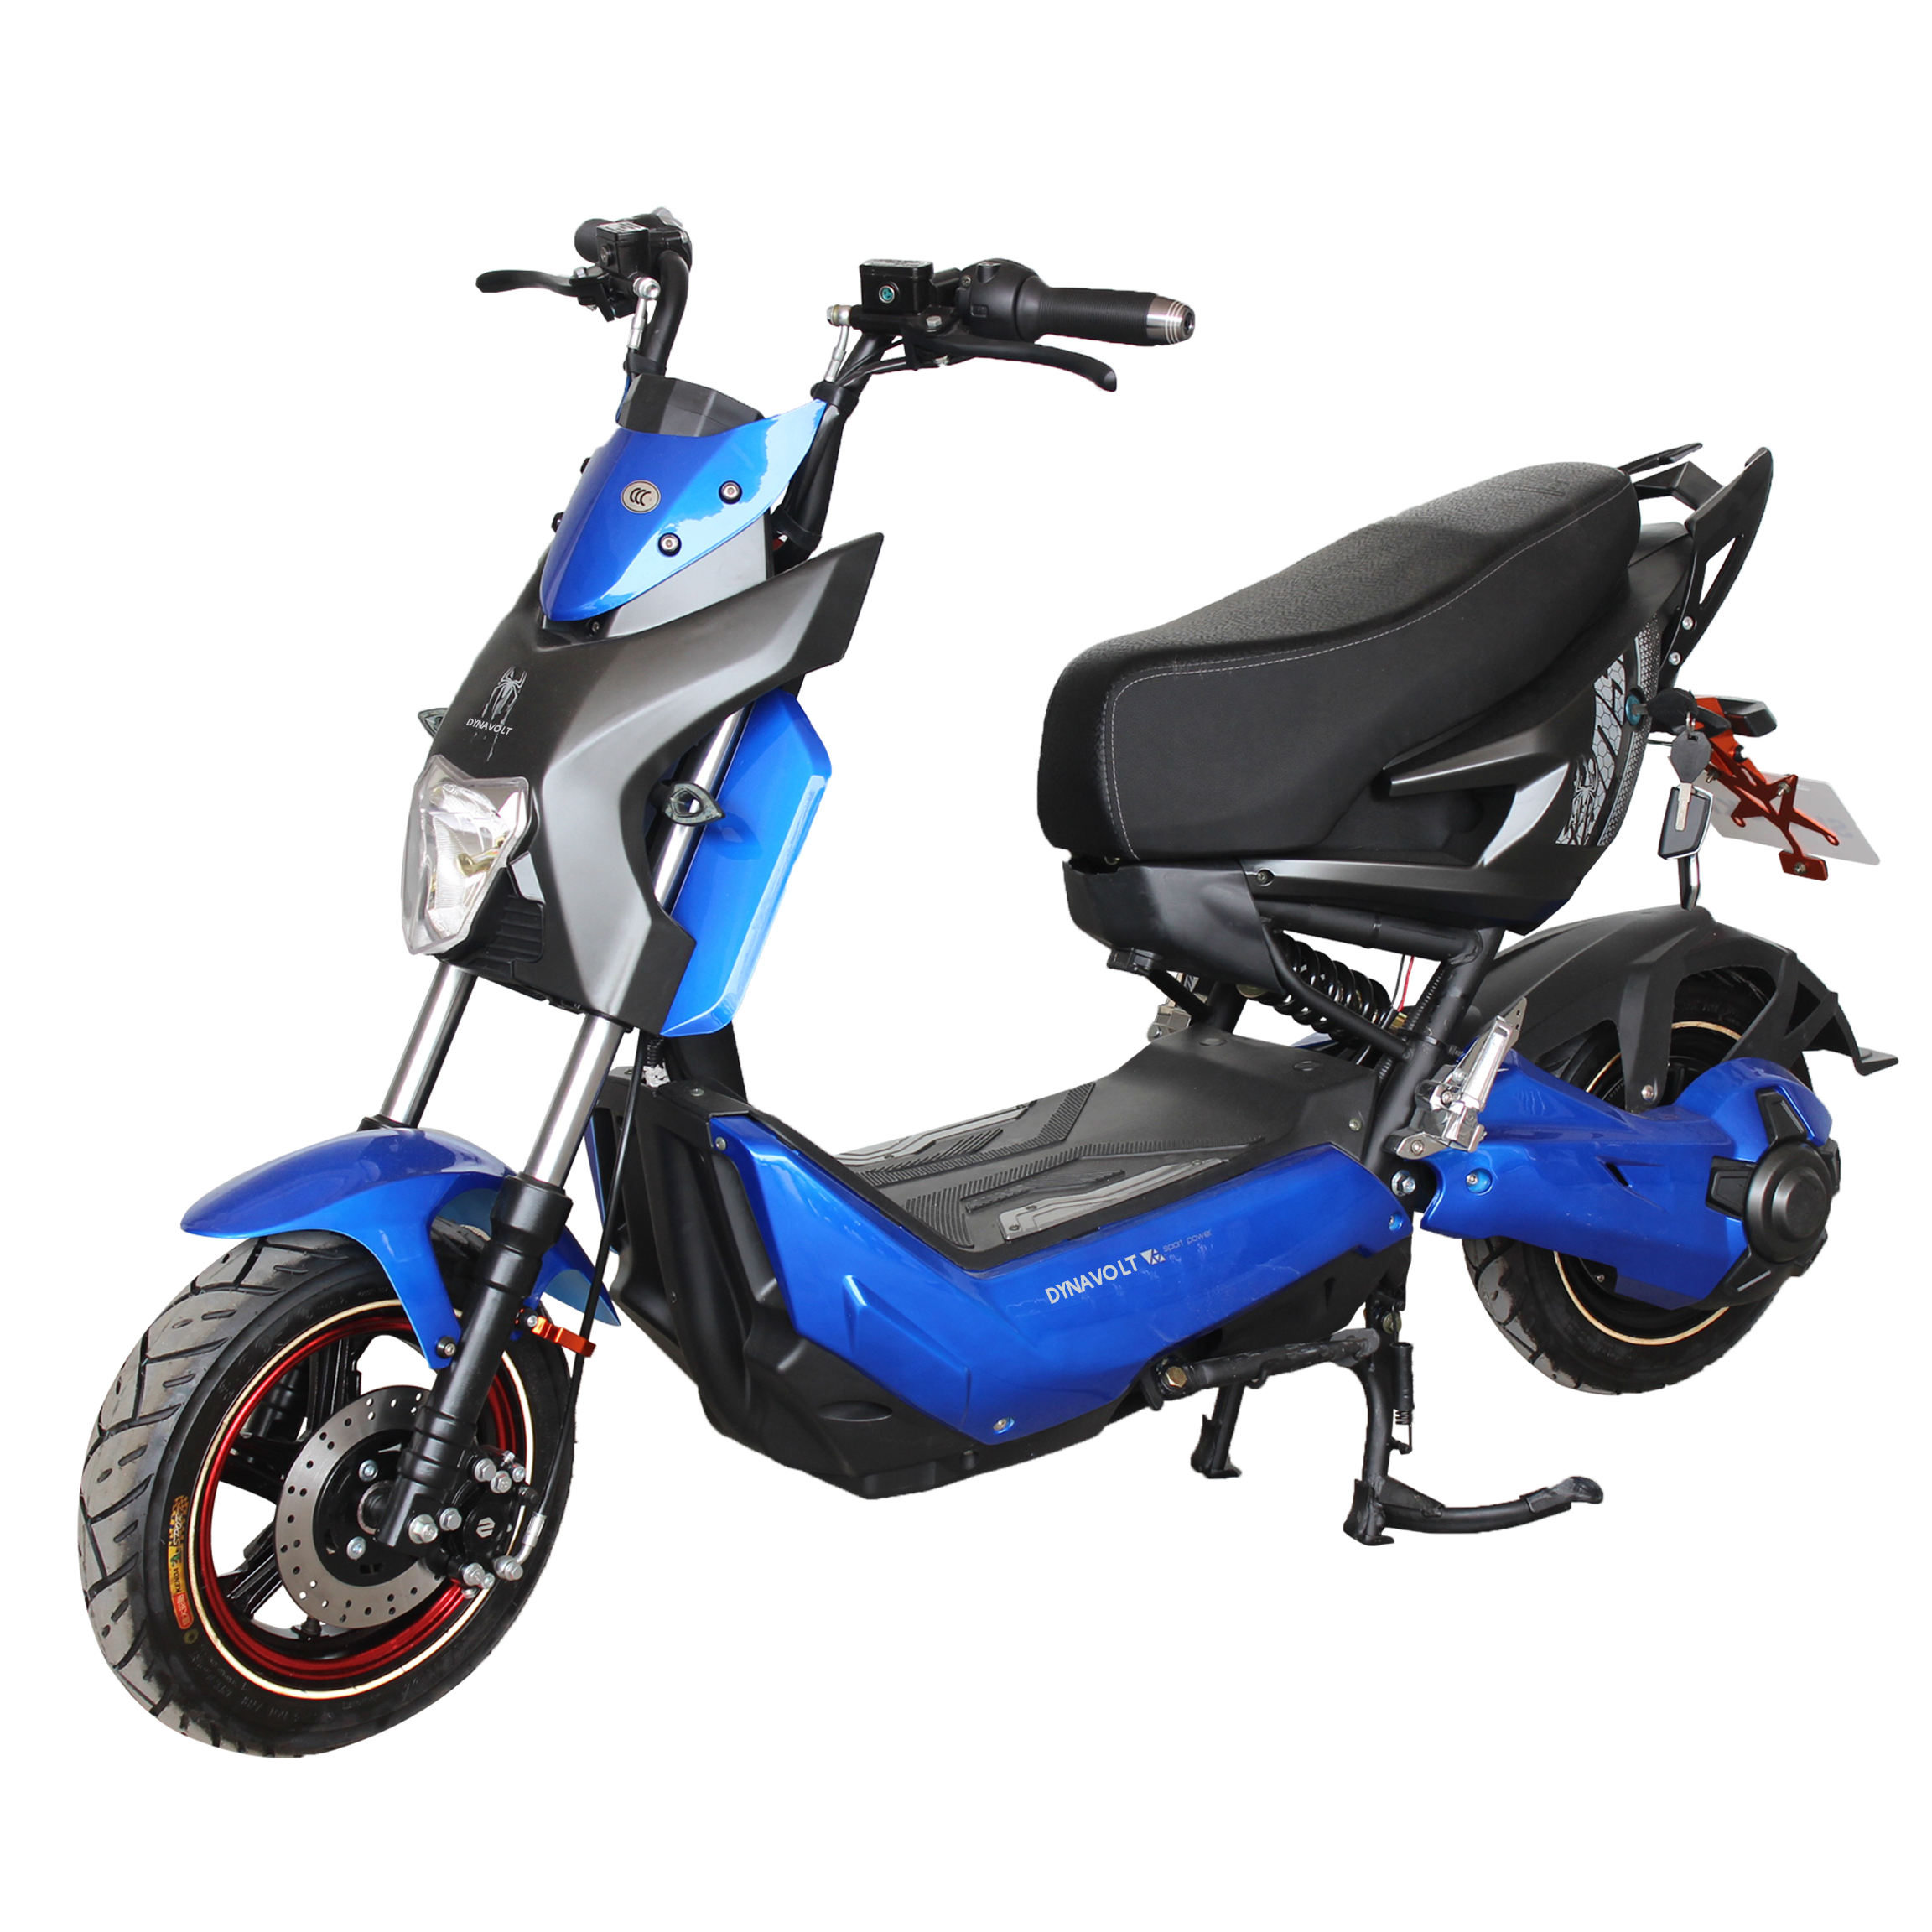 800w electric motor heavy bike motorcycle scooter electric adult